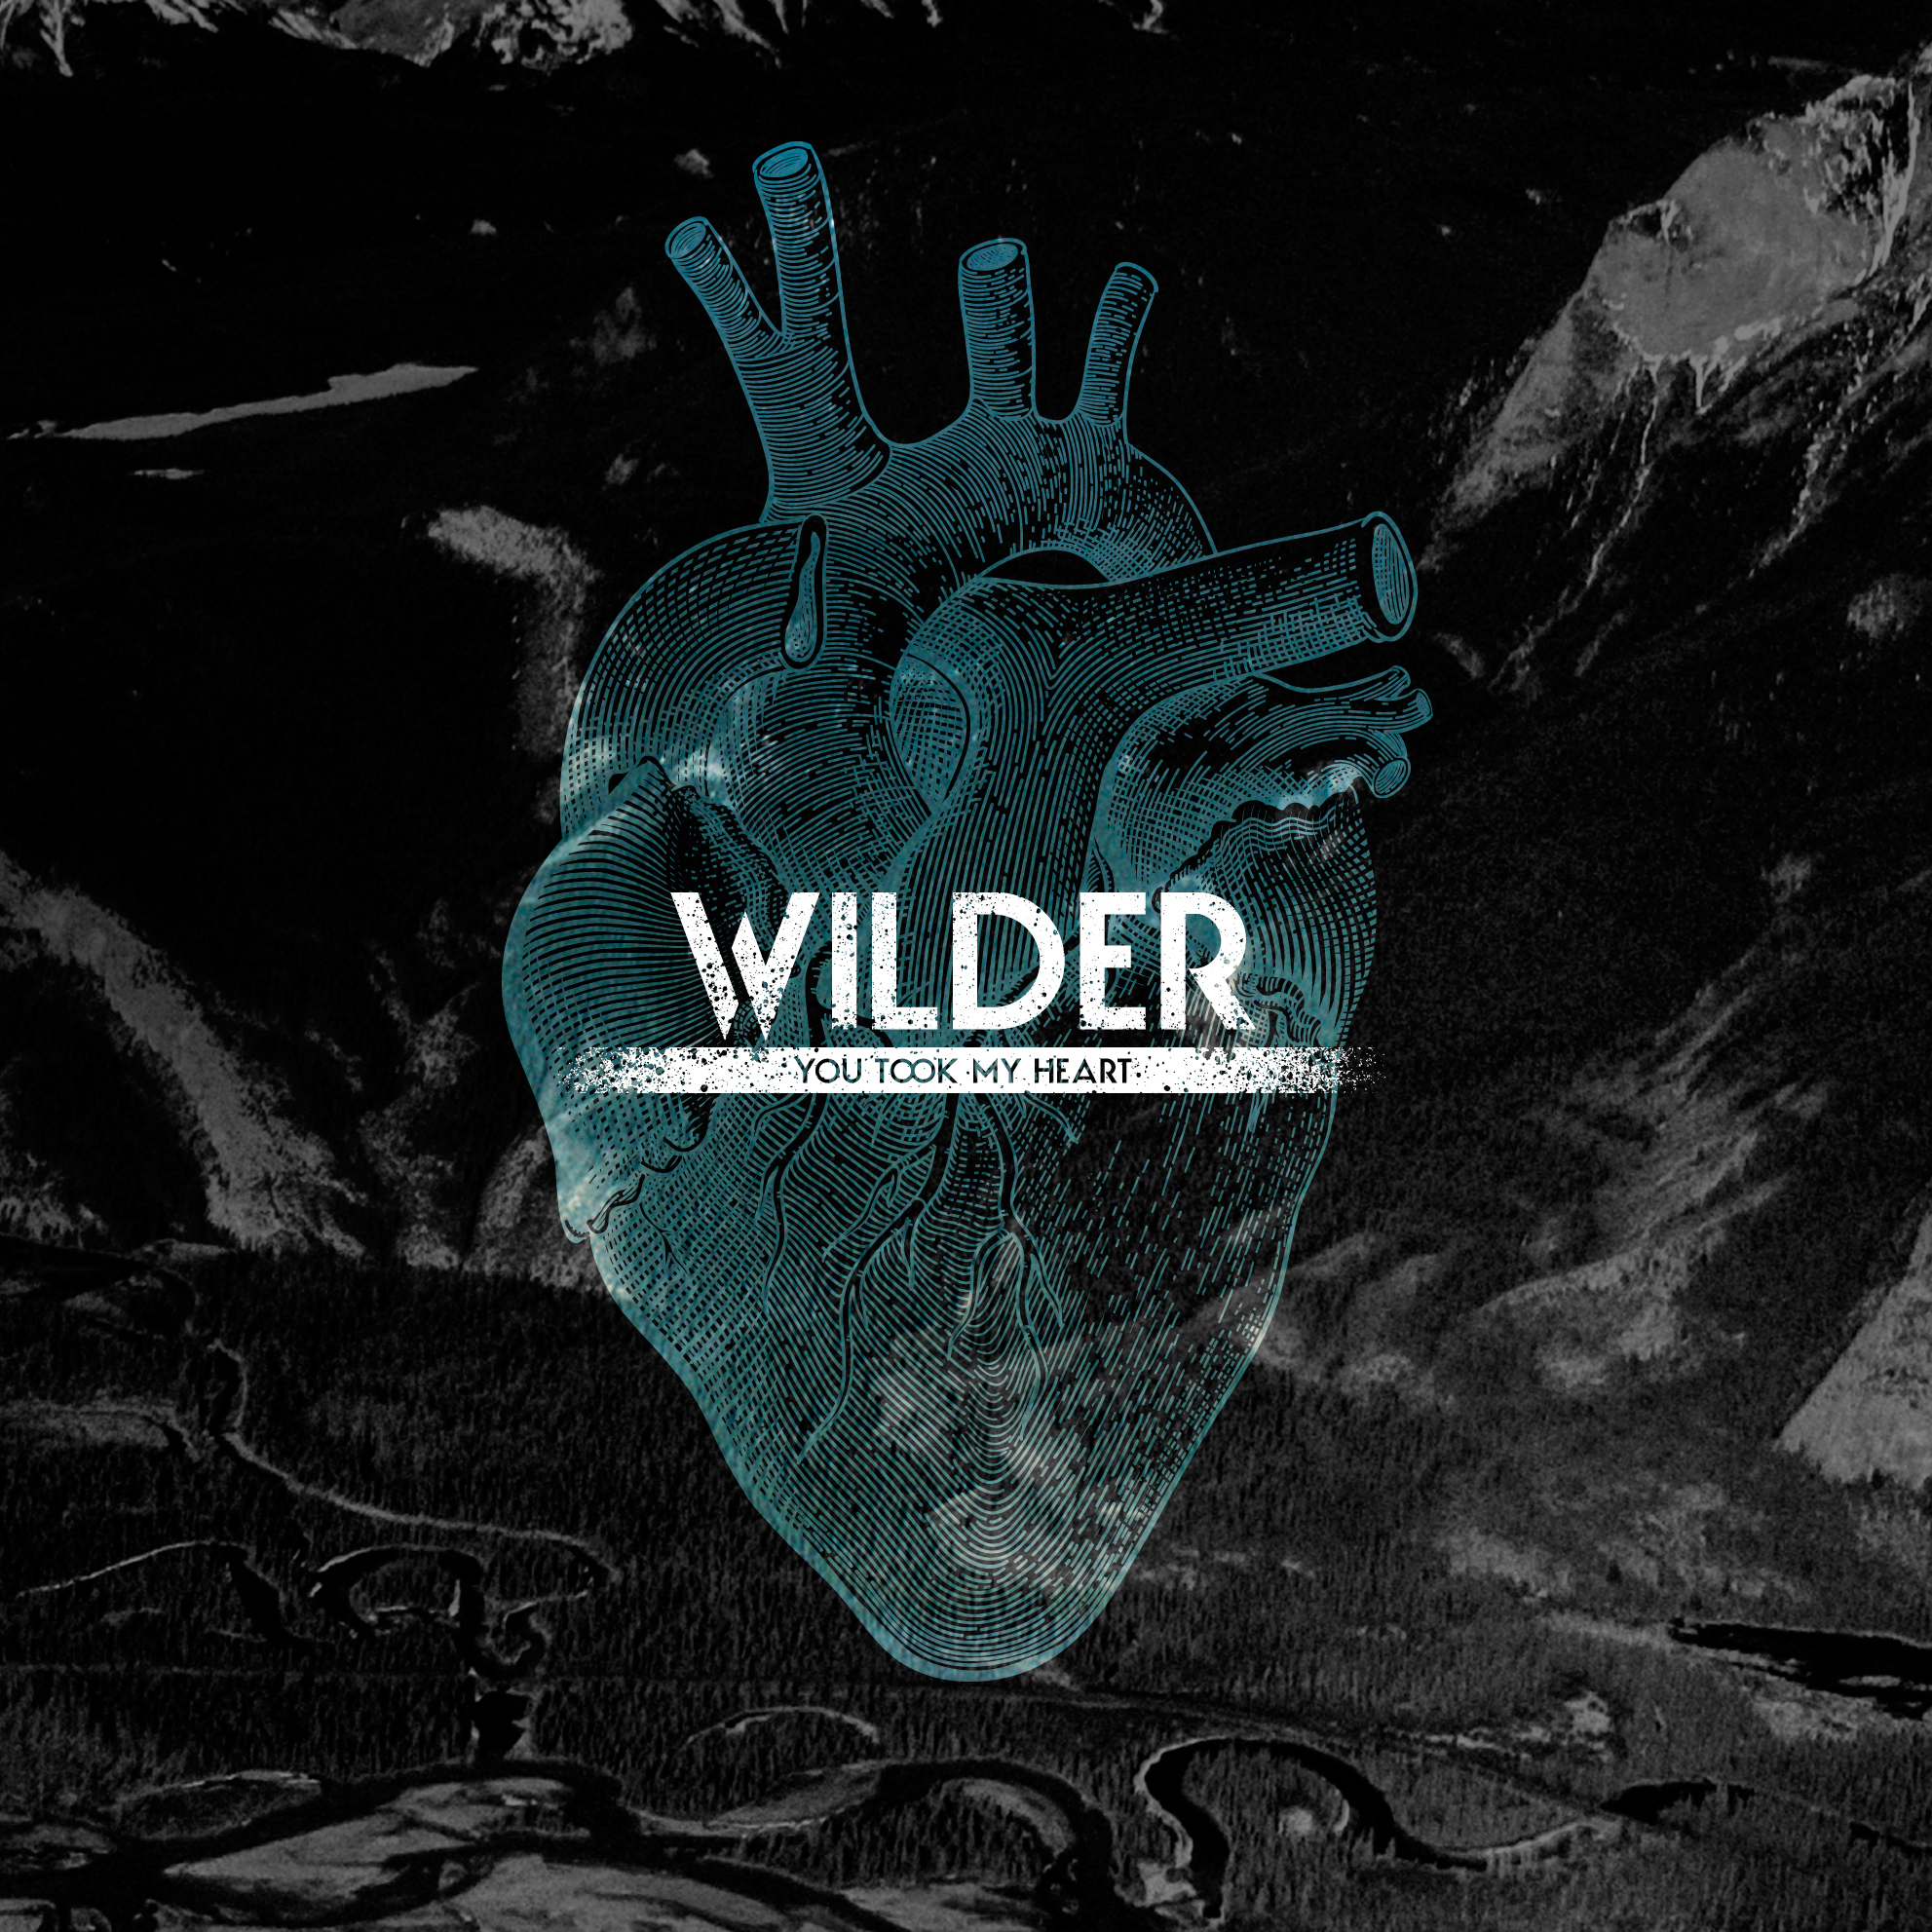 Wilder-you-took-my-heart-single-cover.jpg